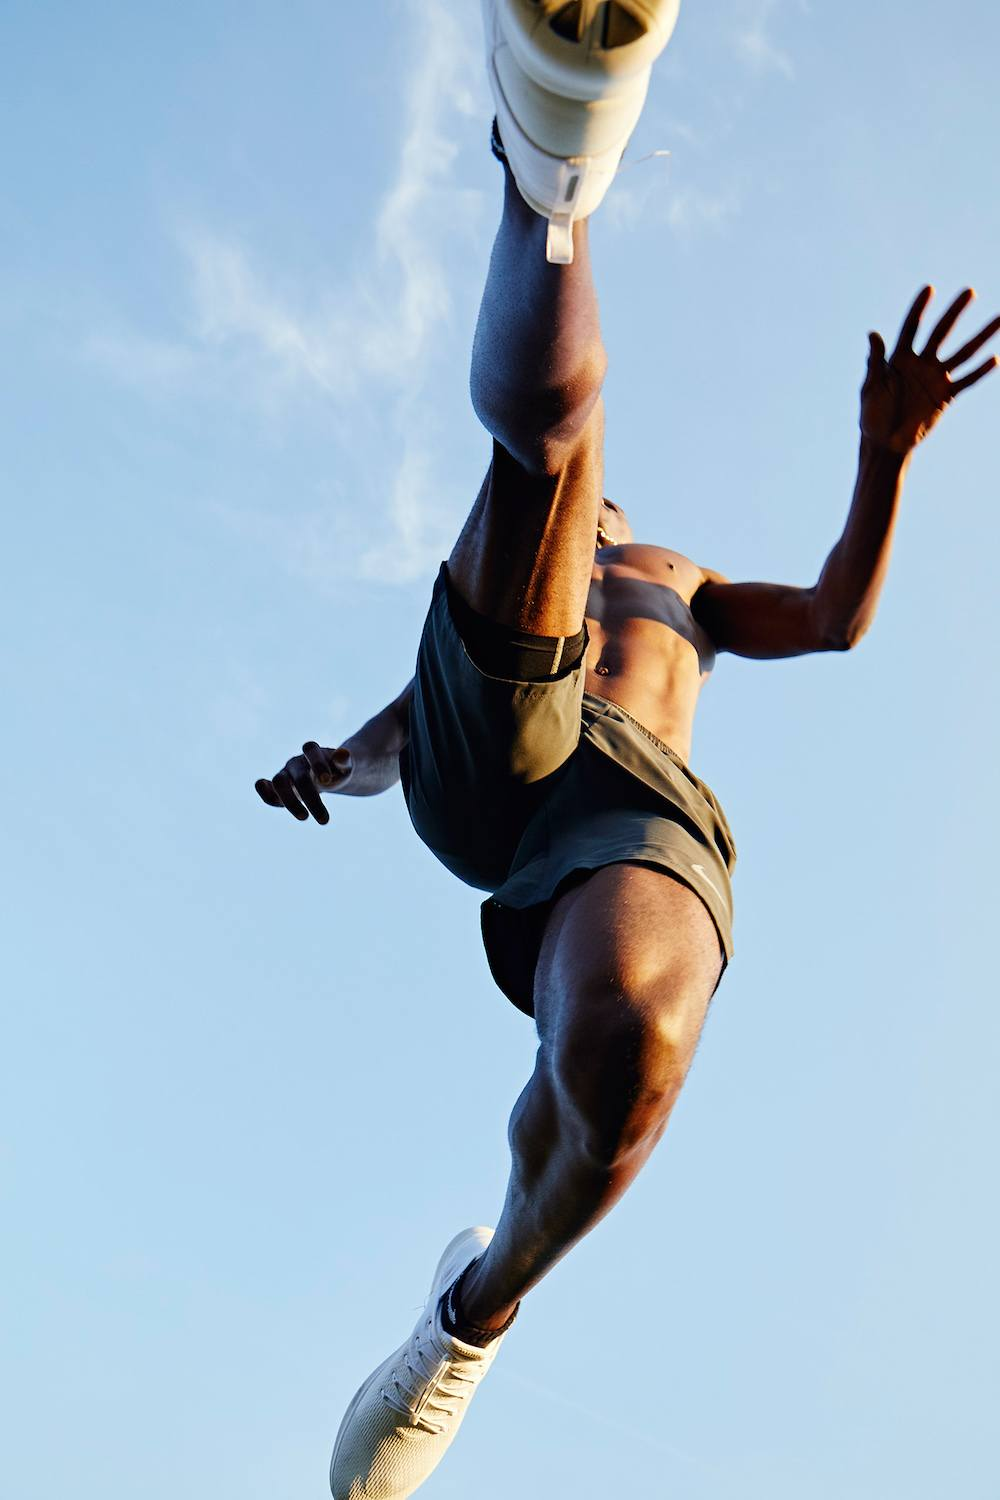 Nike-athlete-jumping-lifestyle-shoot.jpg